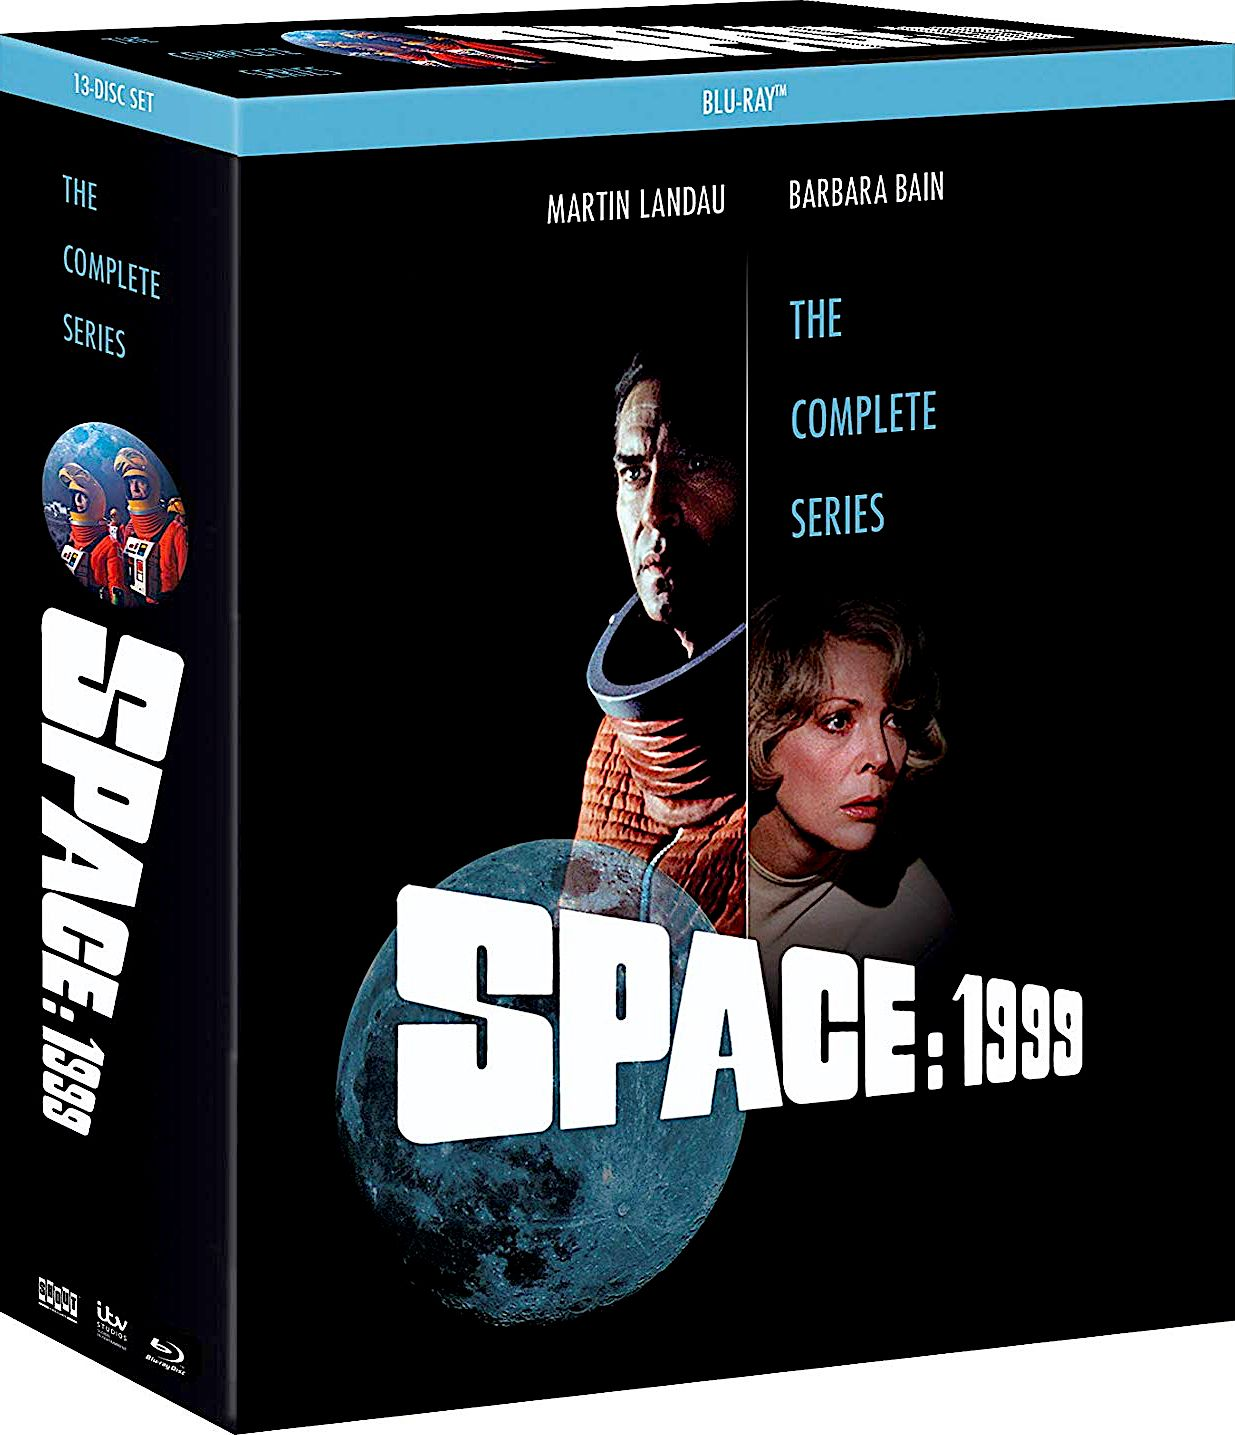 SPACE 1999 THE COMPLETE SERIES BLURAY BOX SET (SHOUT